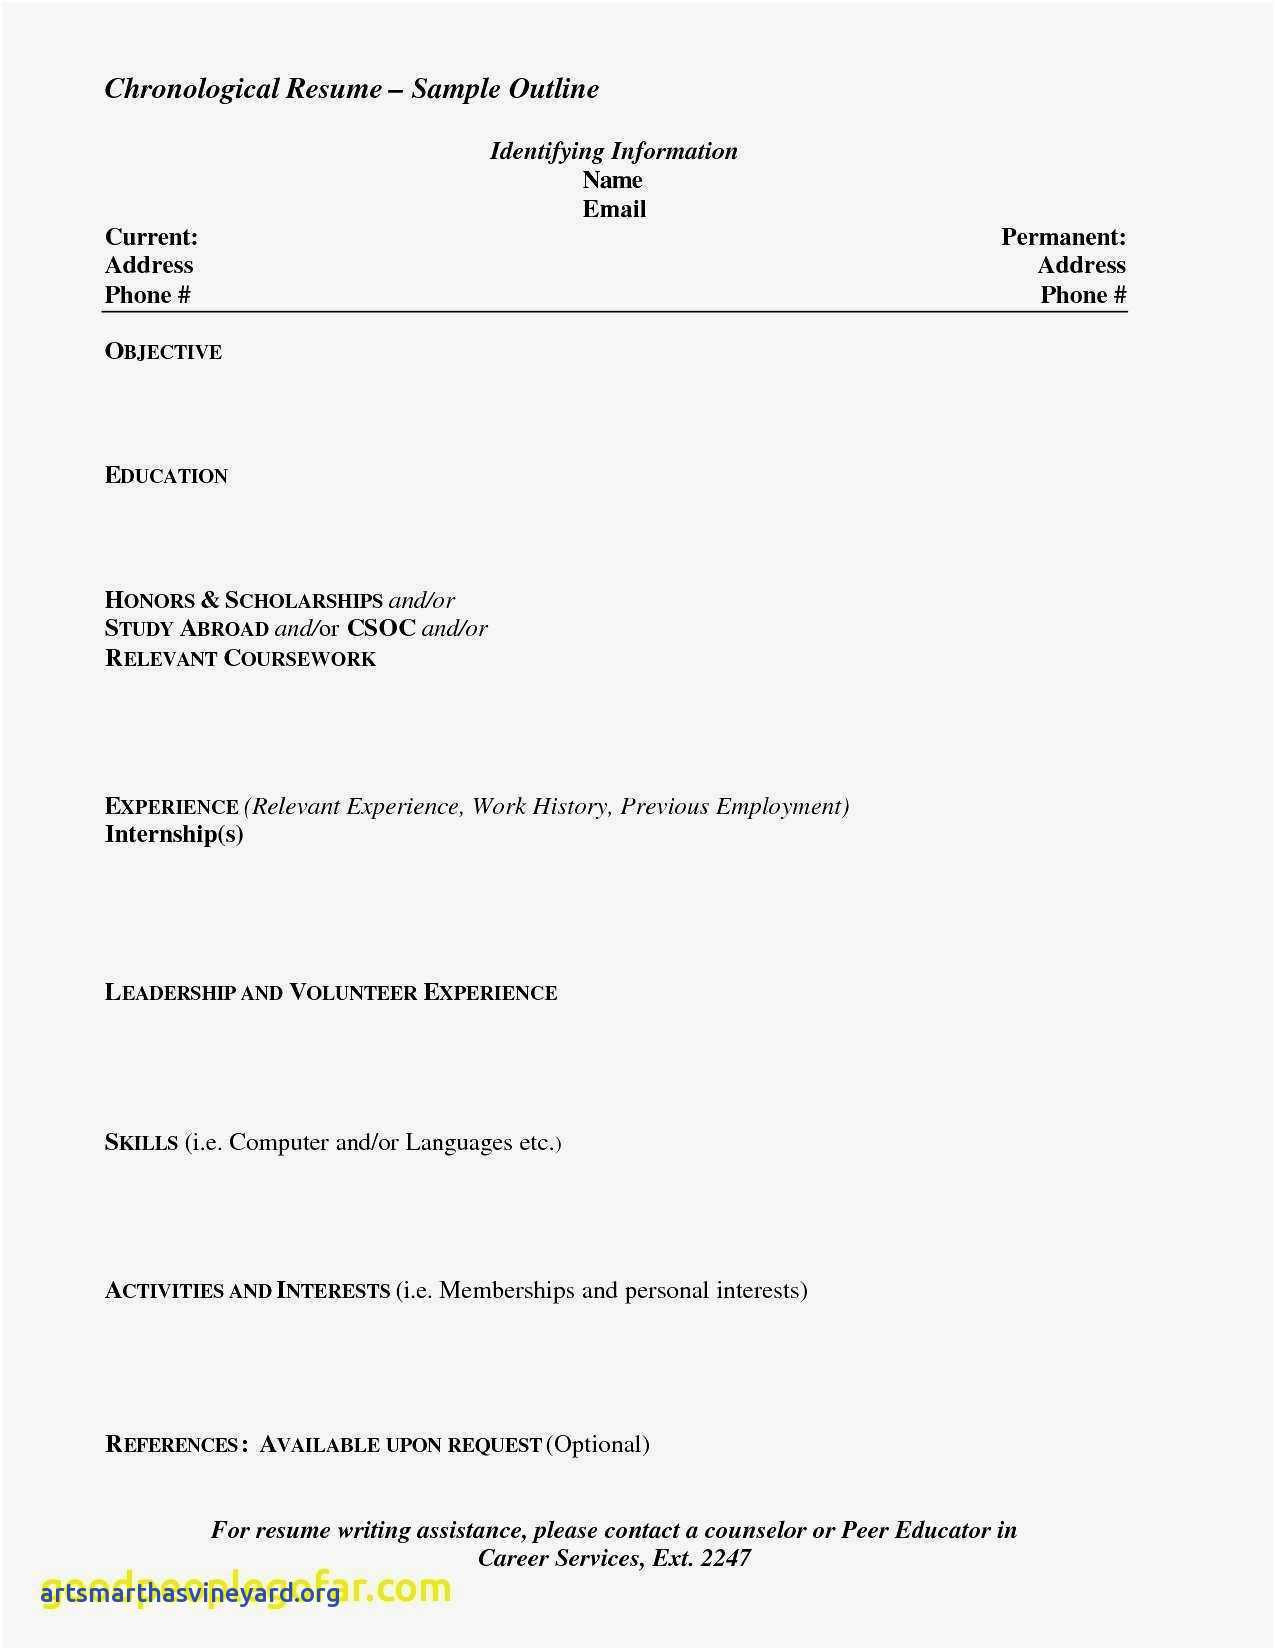 Resume Template for Writers - Resume Templates High School Students No Experience Simple Unique